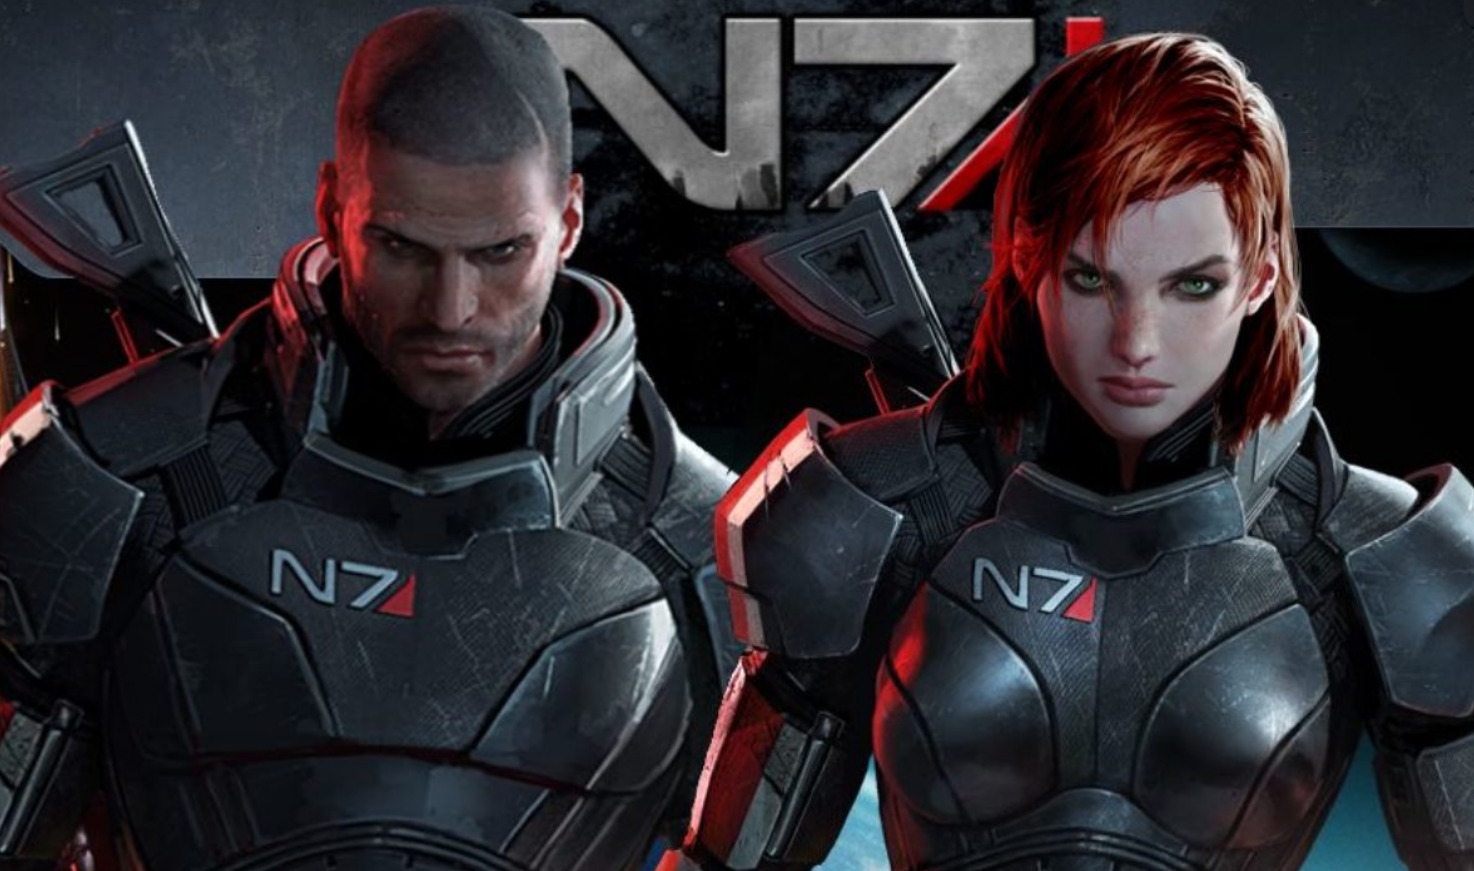 Mass Effect Director Announces Several Series Veterans Who Are Returning For The New Game